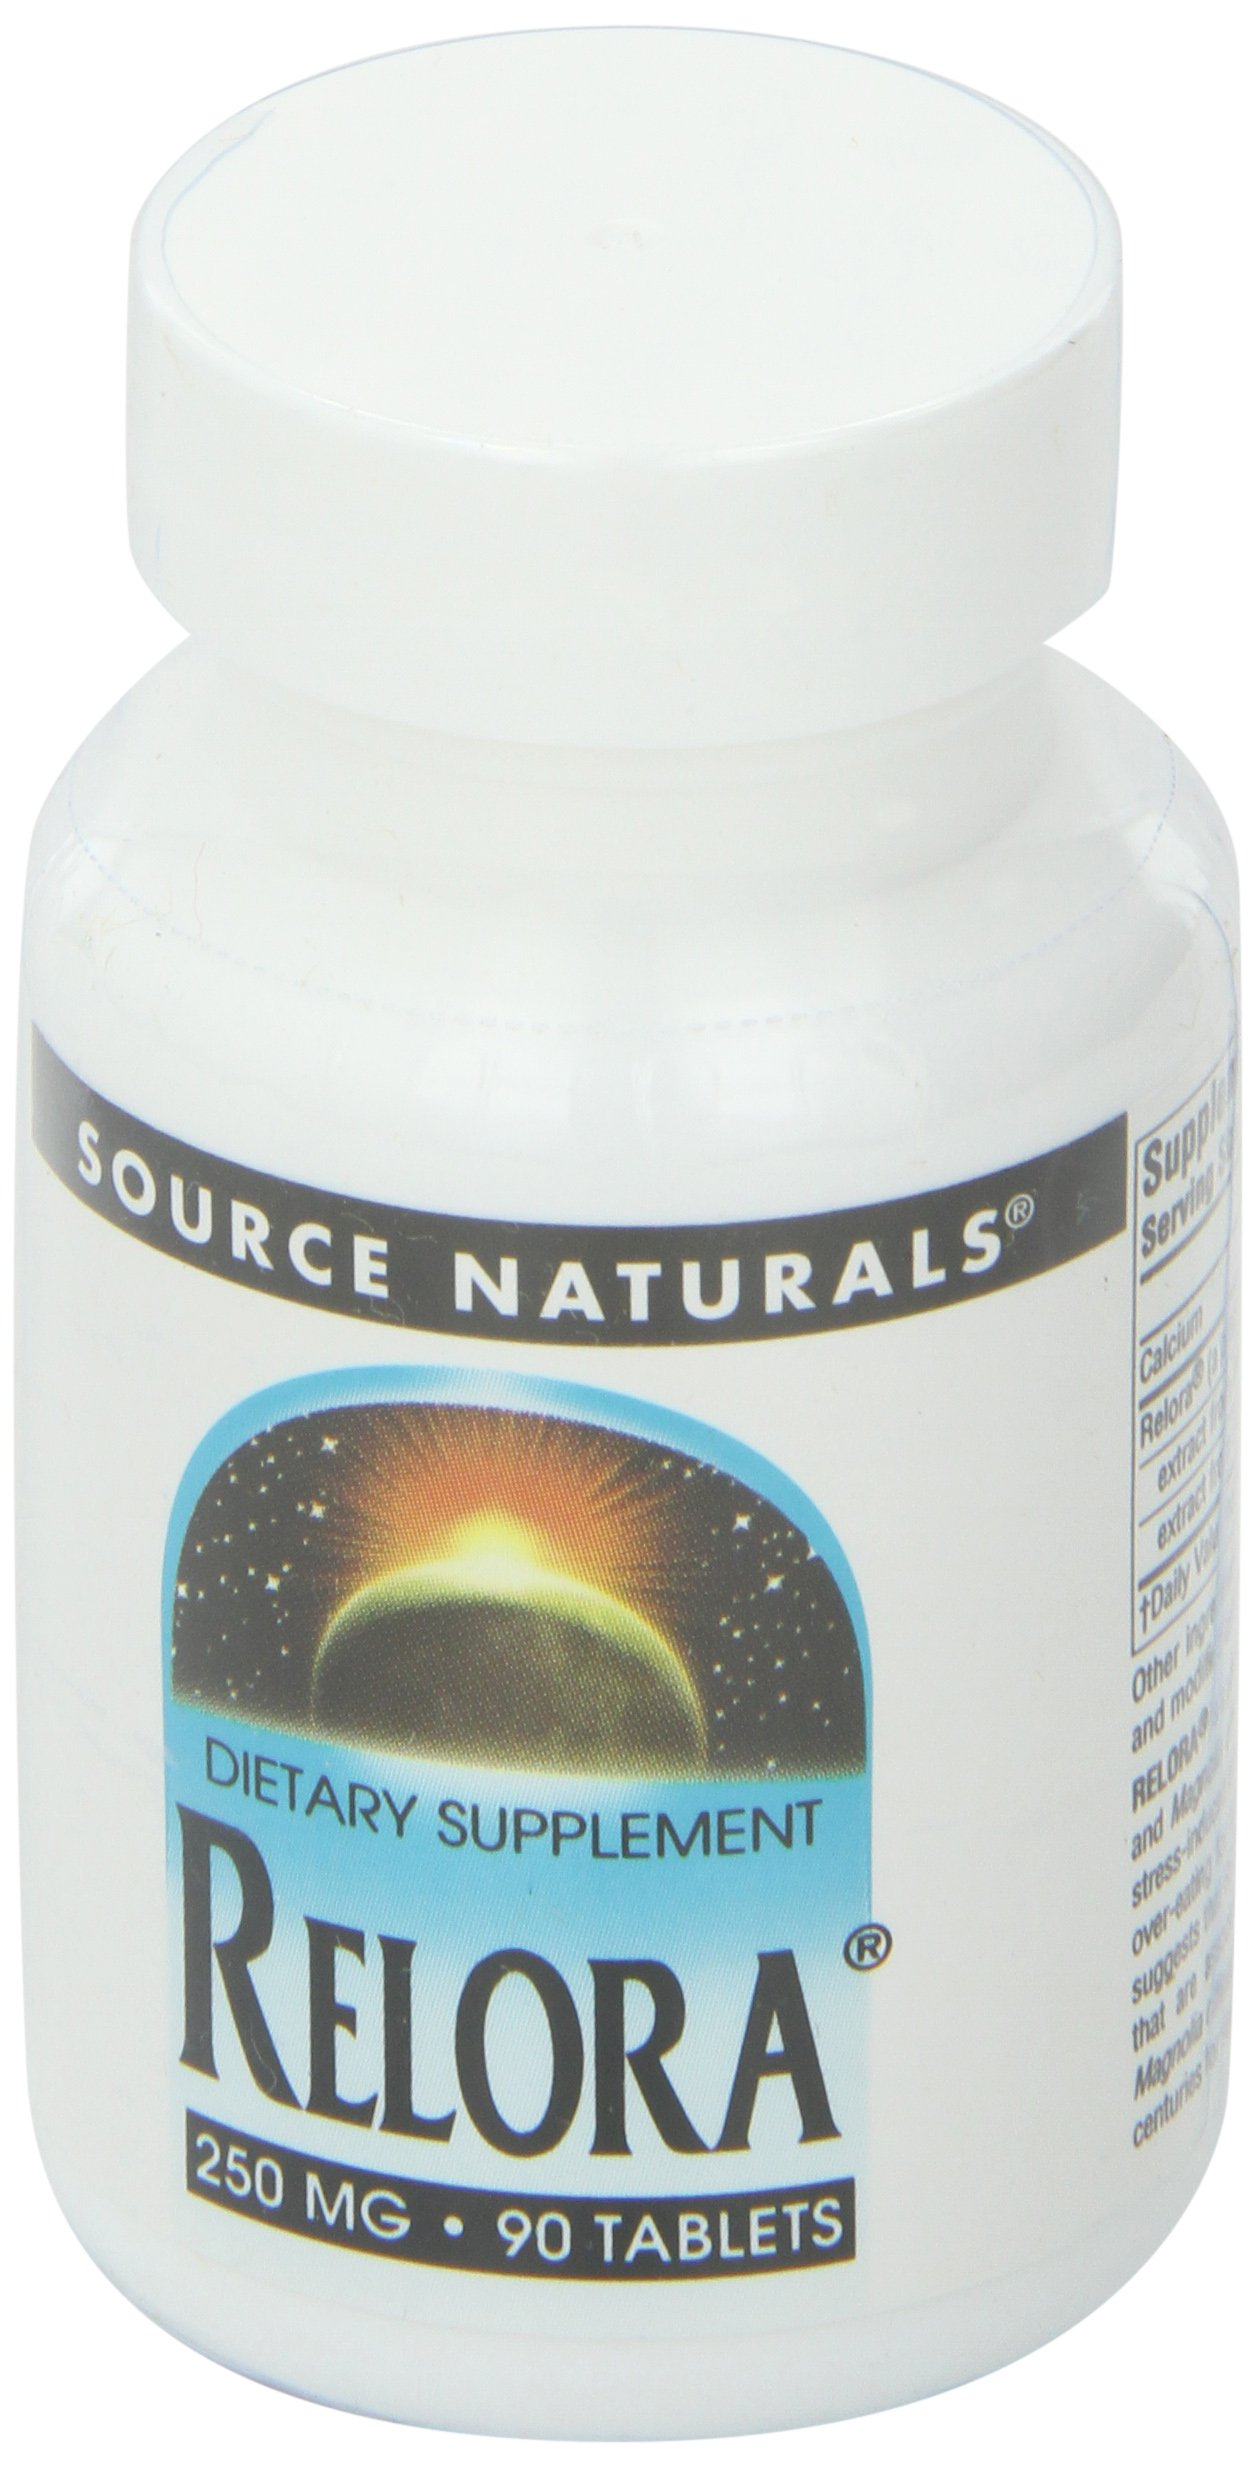 Source Naturals Relora, 250mg, 90 Tablets (Pack of 2)